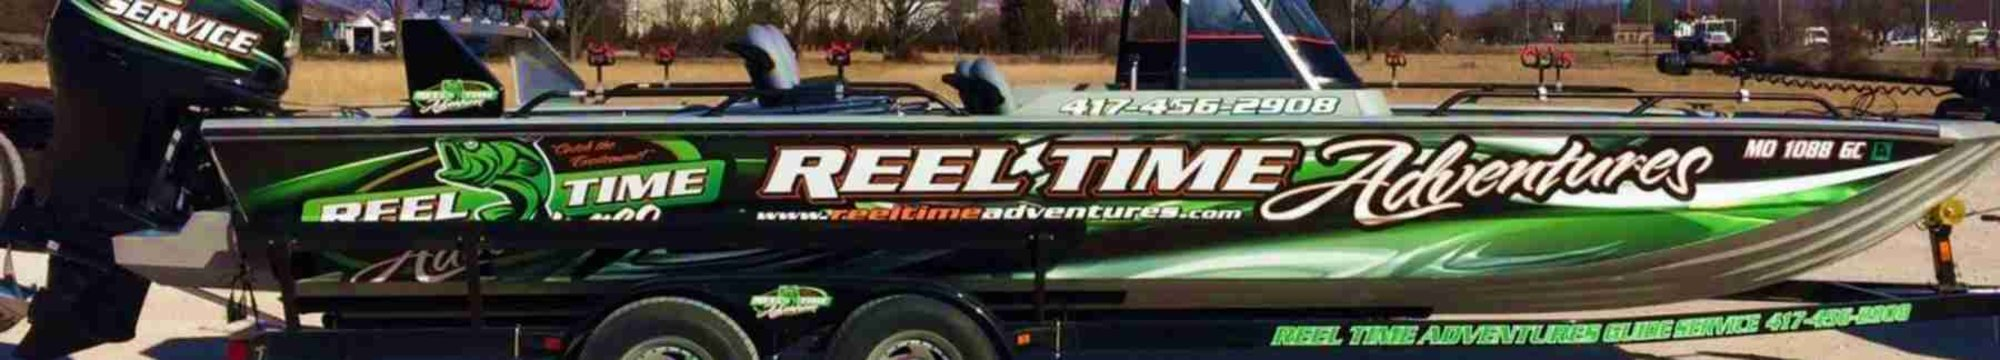 Reel Time Adventure Guide Service